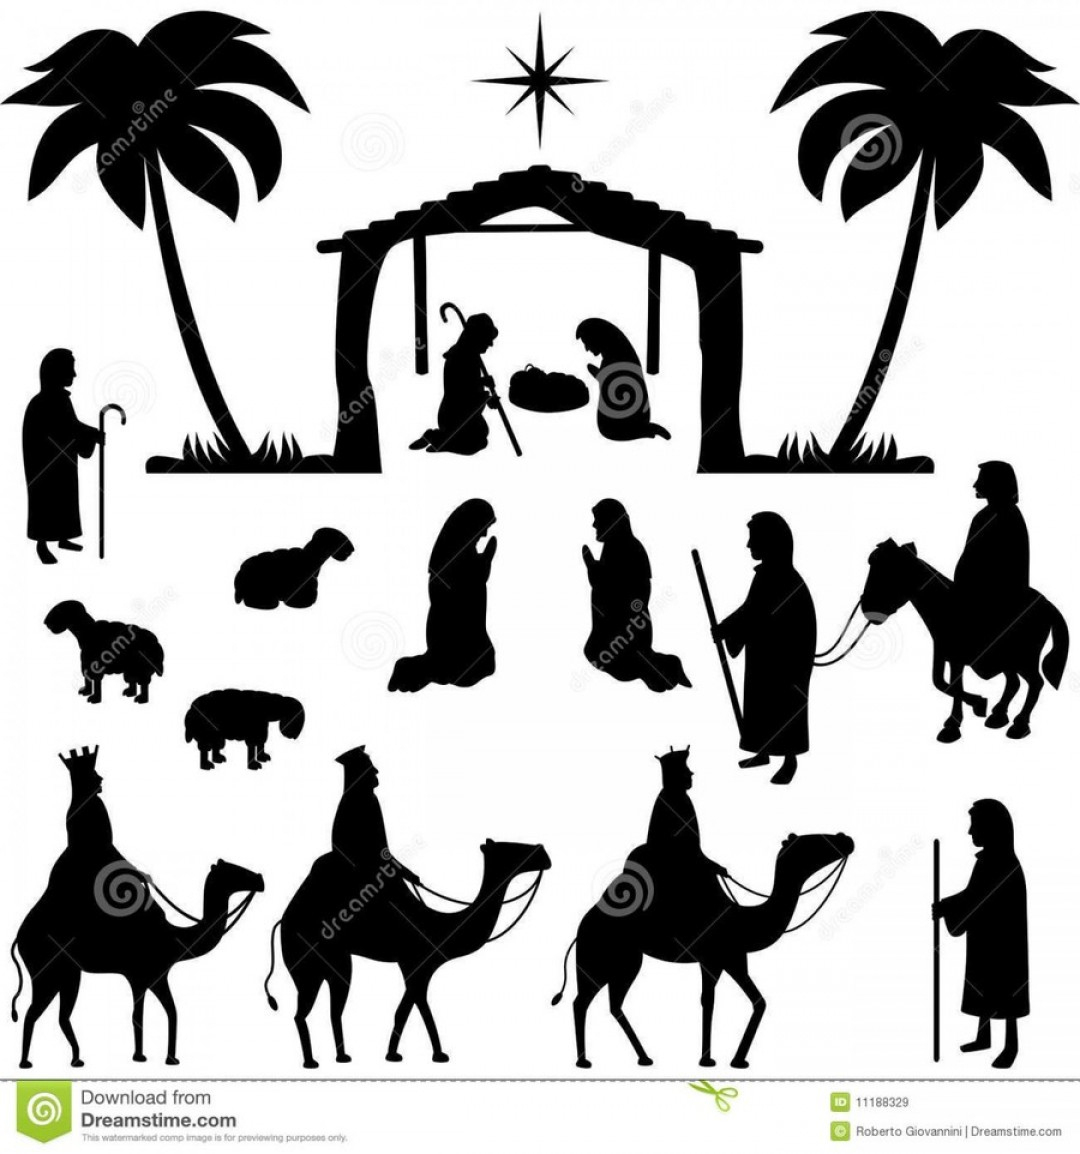 Free Nativity Scene Images Clip Art | Soidergi - Free Printable Nativity Silhouette